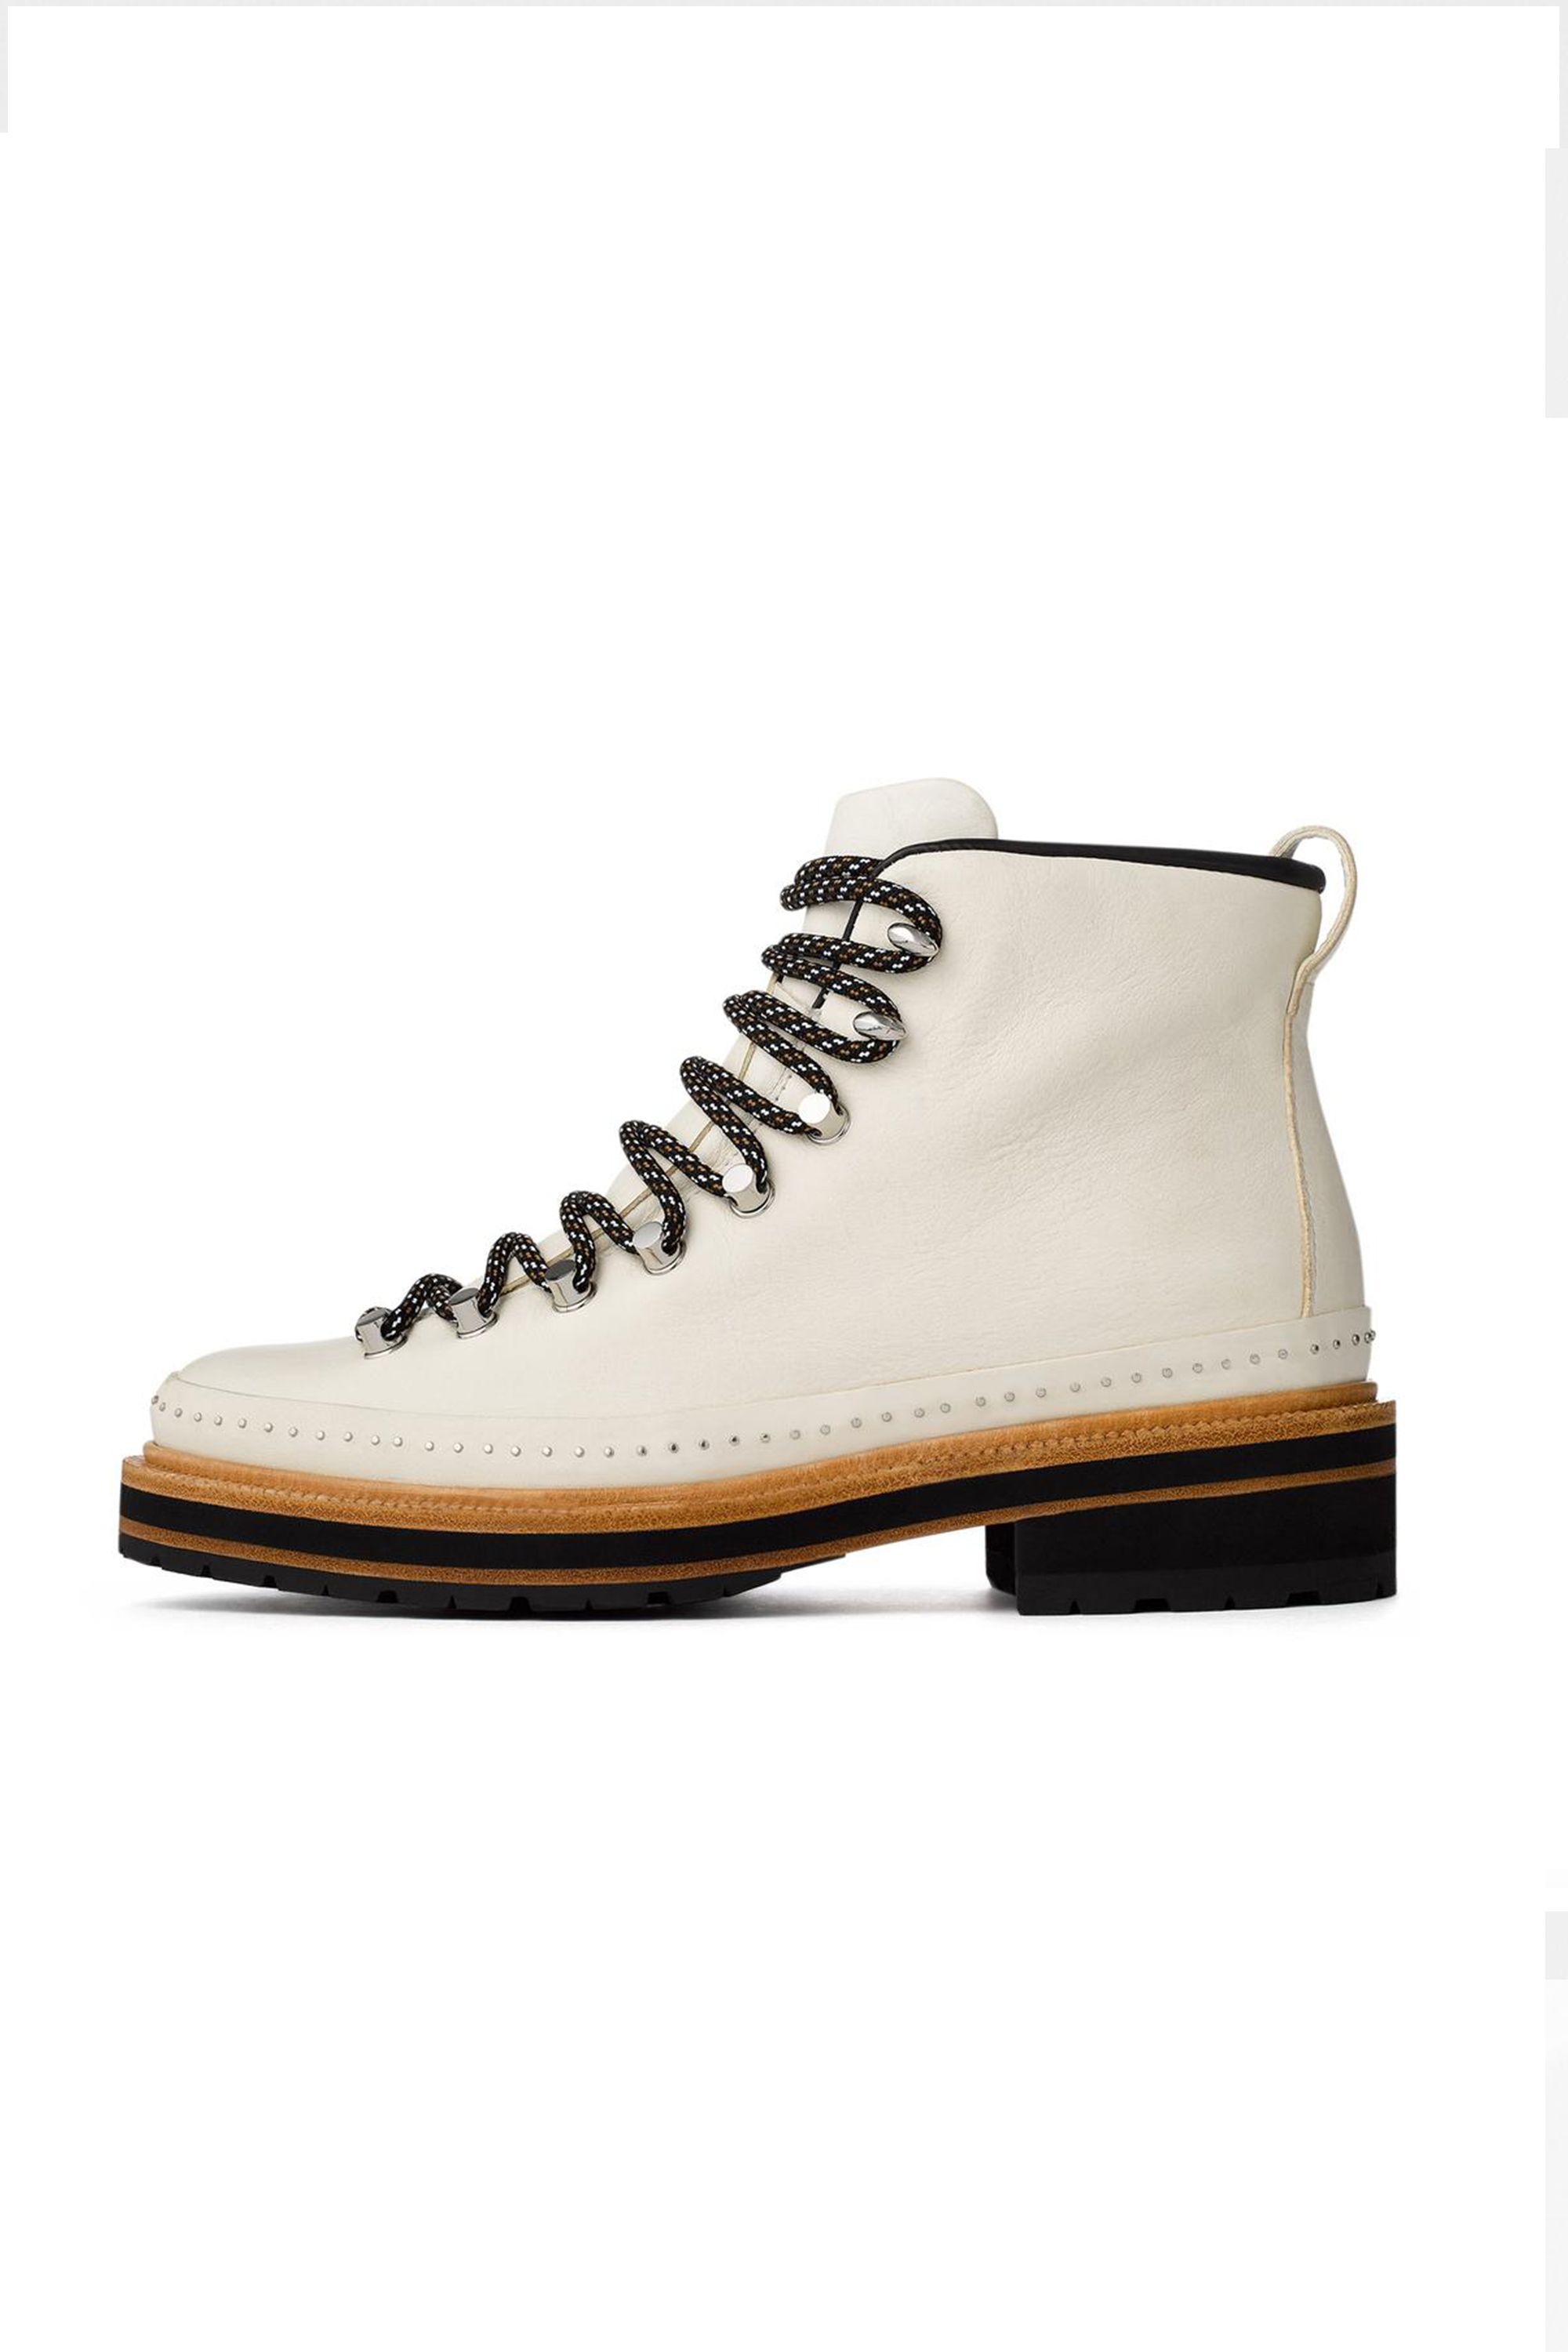 "<p>Rag & Bone, Compass Boot, $650; <a href=""http://www.rag-bone.com/womens/boots/compass-boot-886353172393.html#start=1"" data-tracking-id=""recirc-text-link"">rag-bone.com</a><span class=""redactor-invisible-space"" data-verified=""redactor"" data-redactor-tag=""span"" data-redactor-class=""redactor-invisible-space""></span></p>"